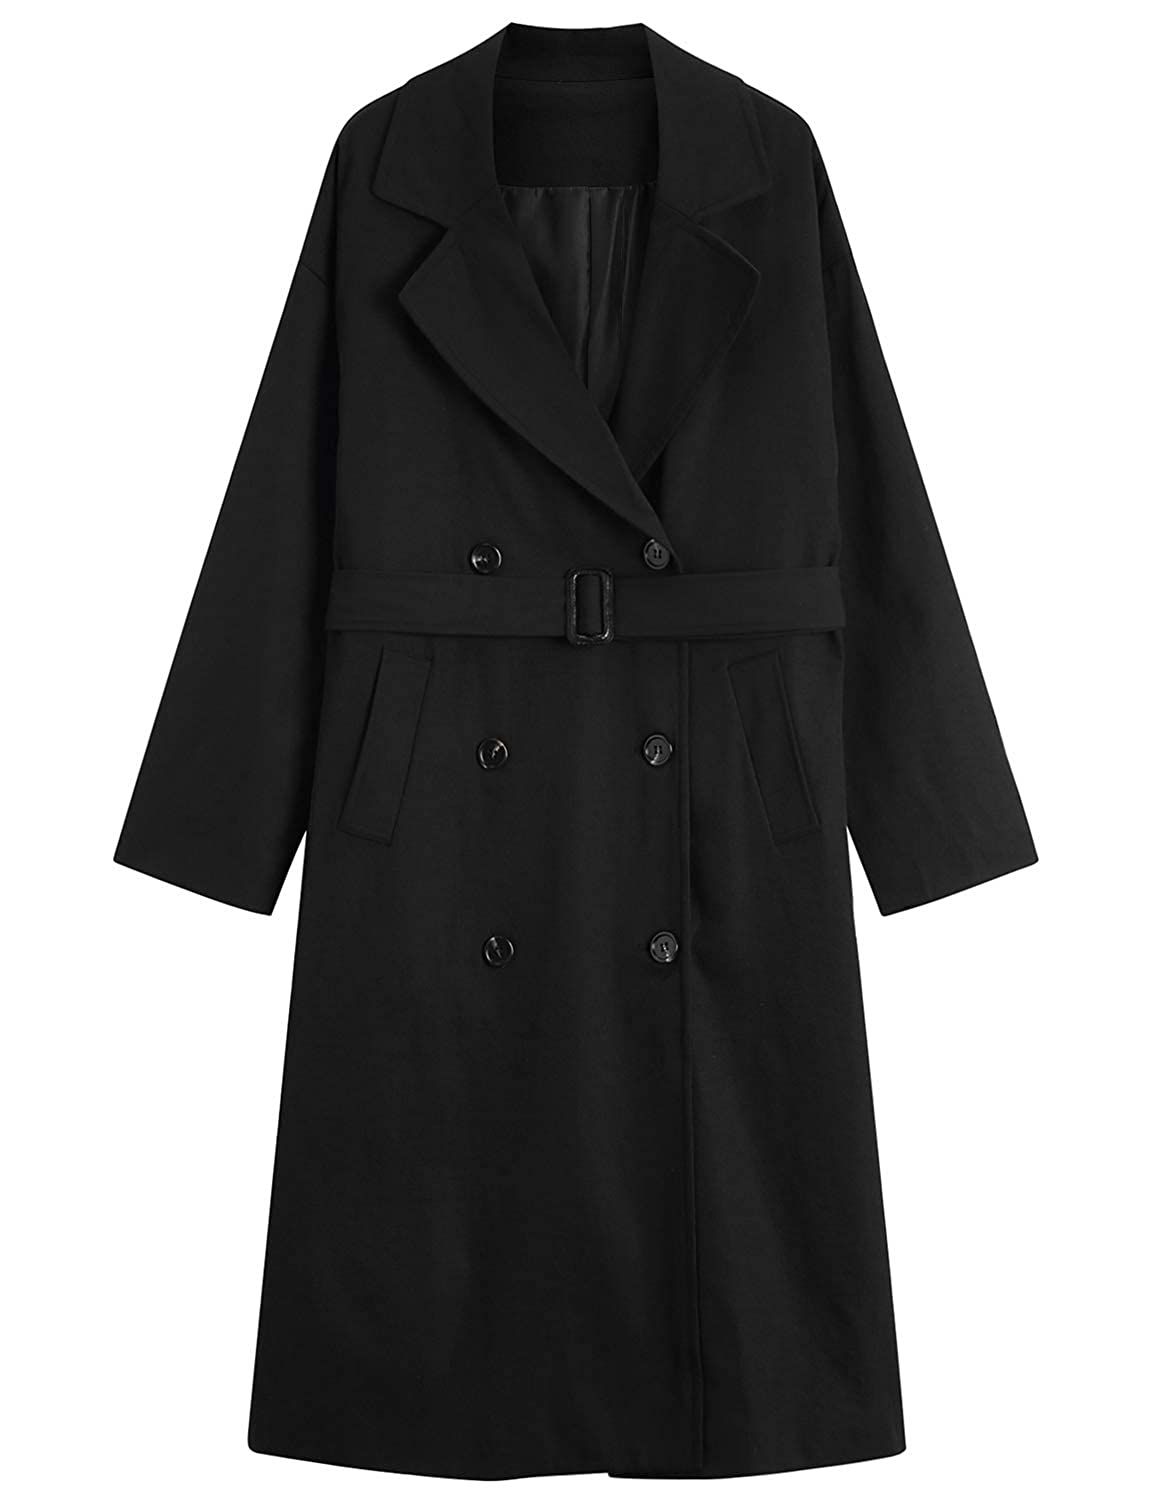 1940s Style Coats and Jackets for Sale MOCRIS Trench Coats for Women Double-Breasted Mid-Length Overcoat Windbreaker with Belt Windbreaker $39.99 AT vintagedancer.com